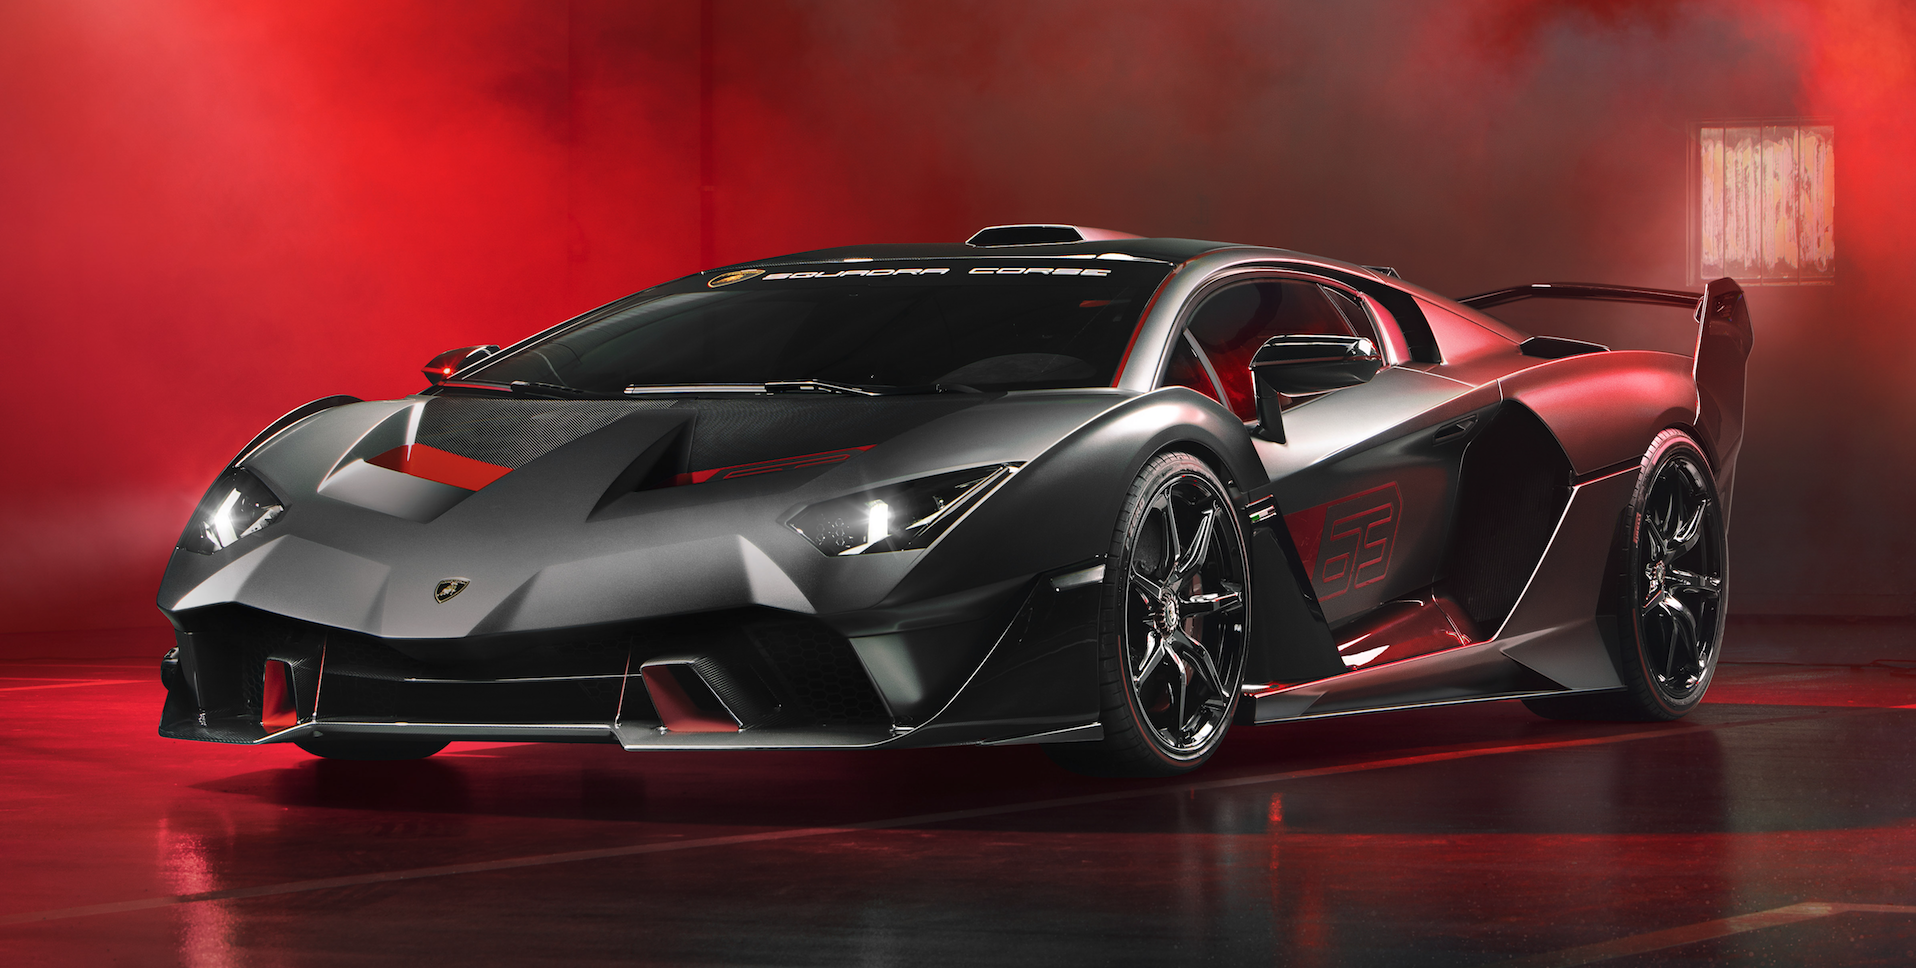 Lamborghini Built This V12, Carbon-Fiber Trackday Beast For One Very Important Customer